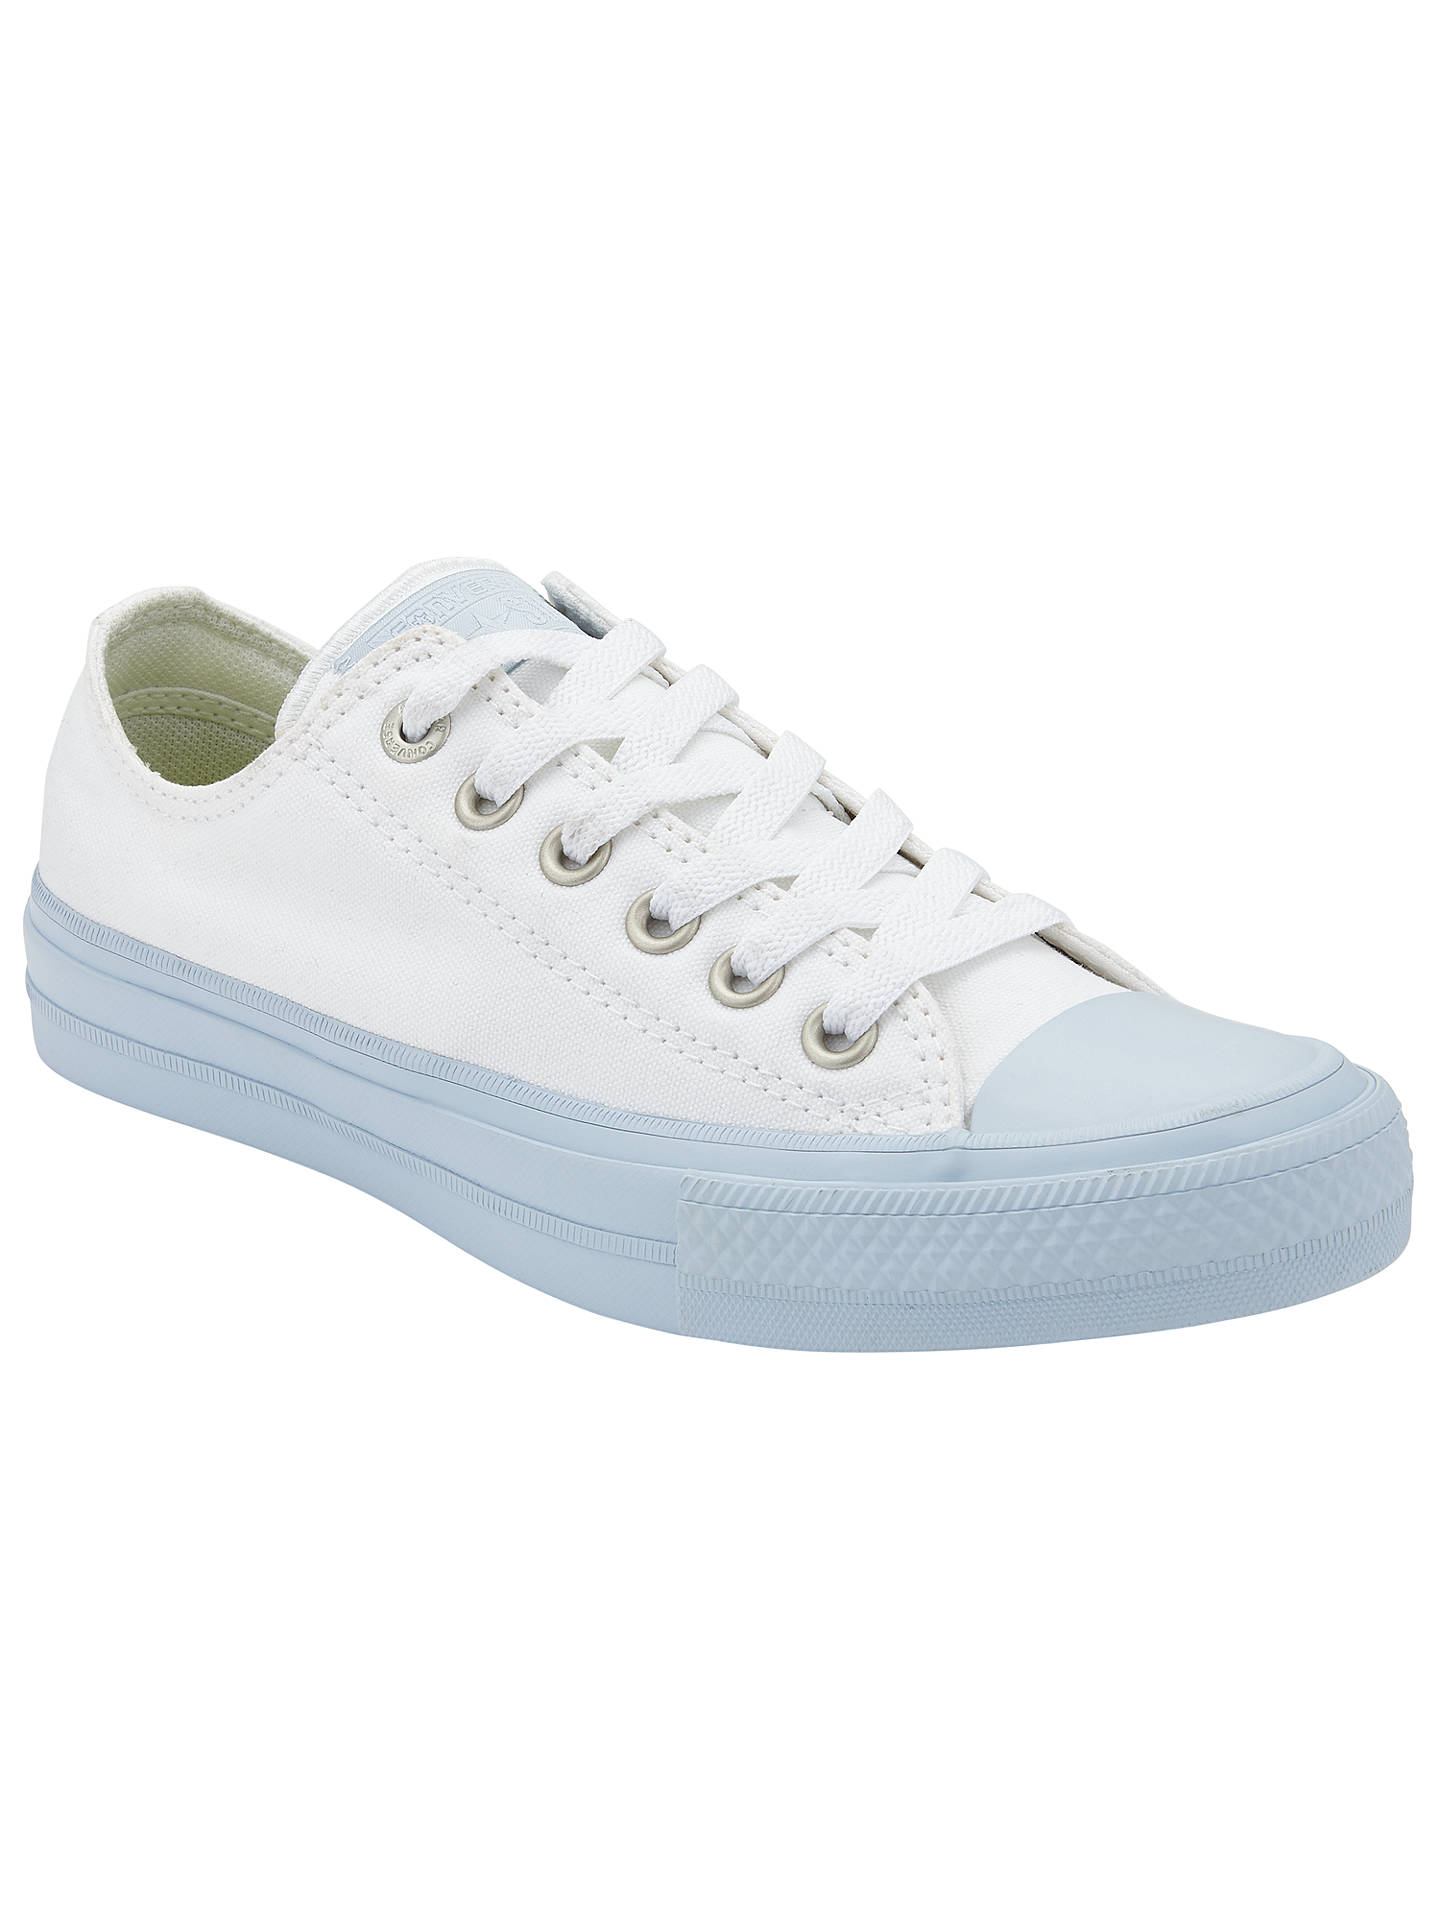 Converse Chuck Taylor All Star 2 Ox Low Top Trainers at John